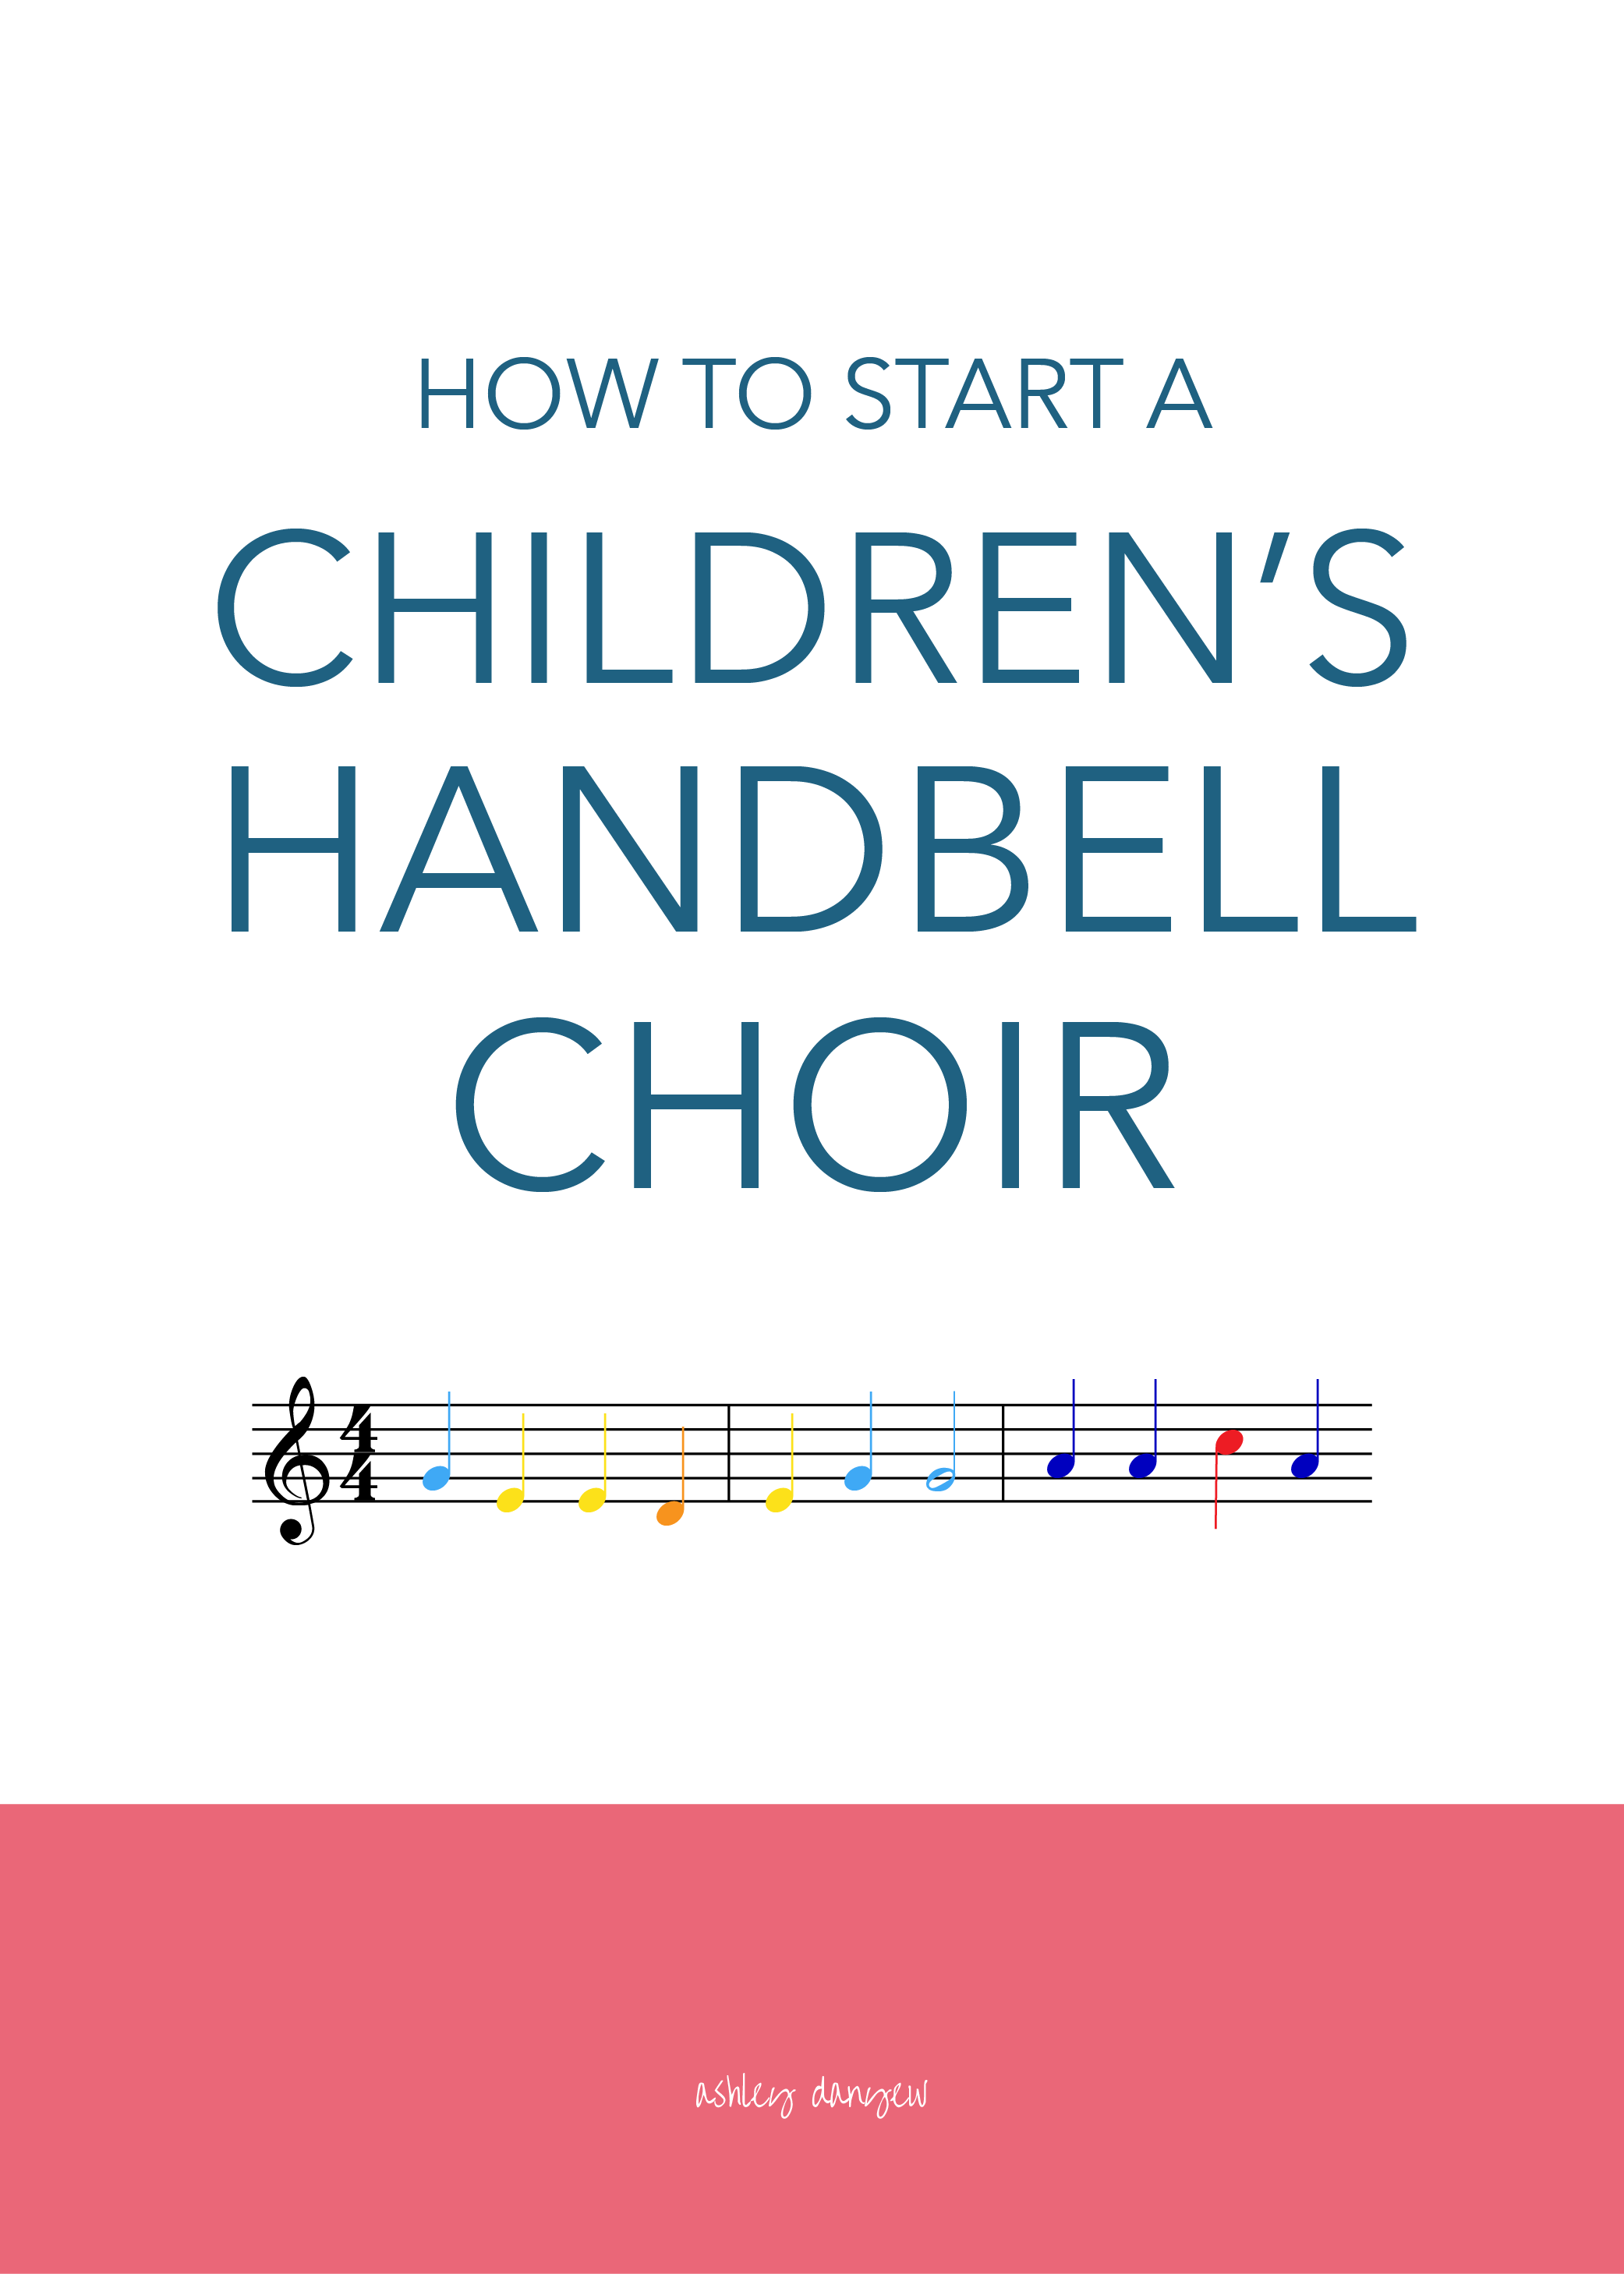 Copy of How to Start a Children's Handbell Choir